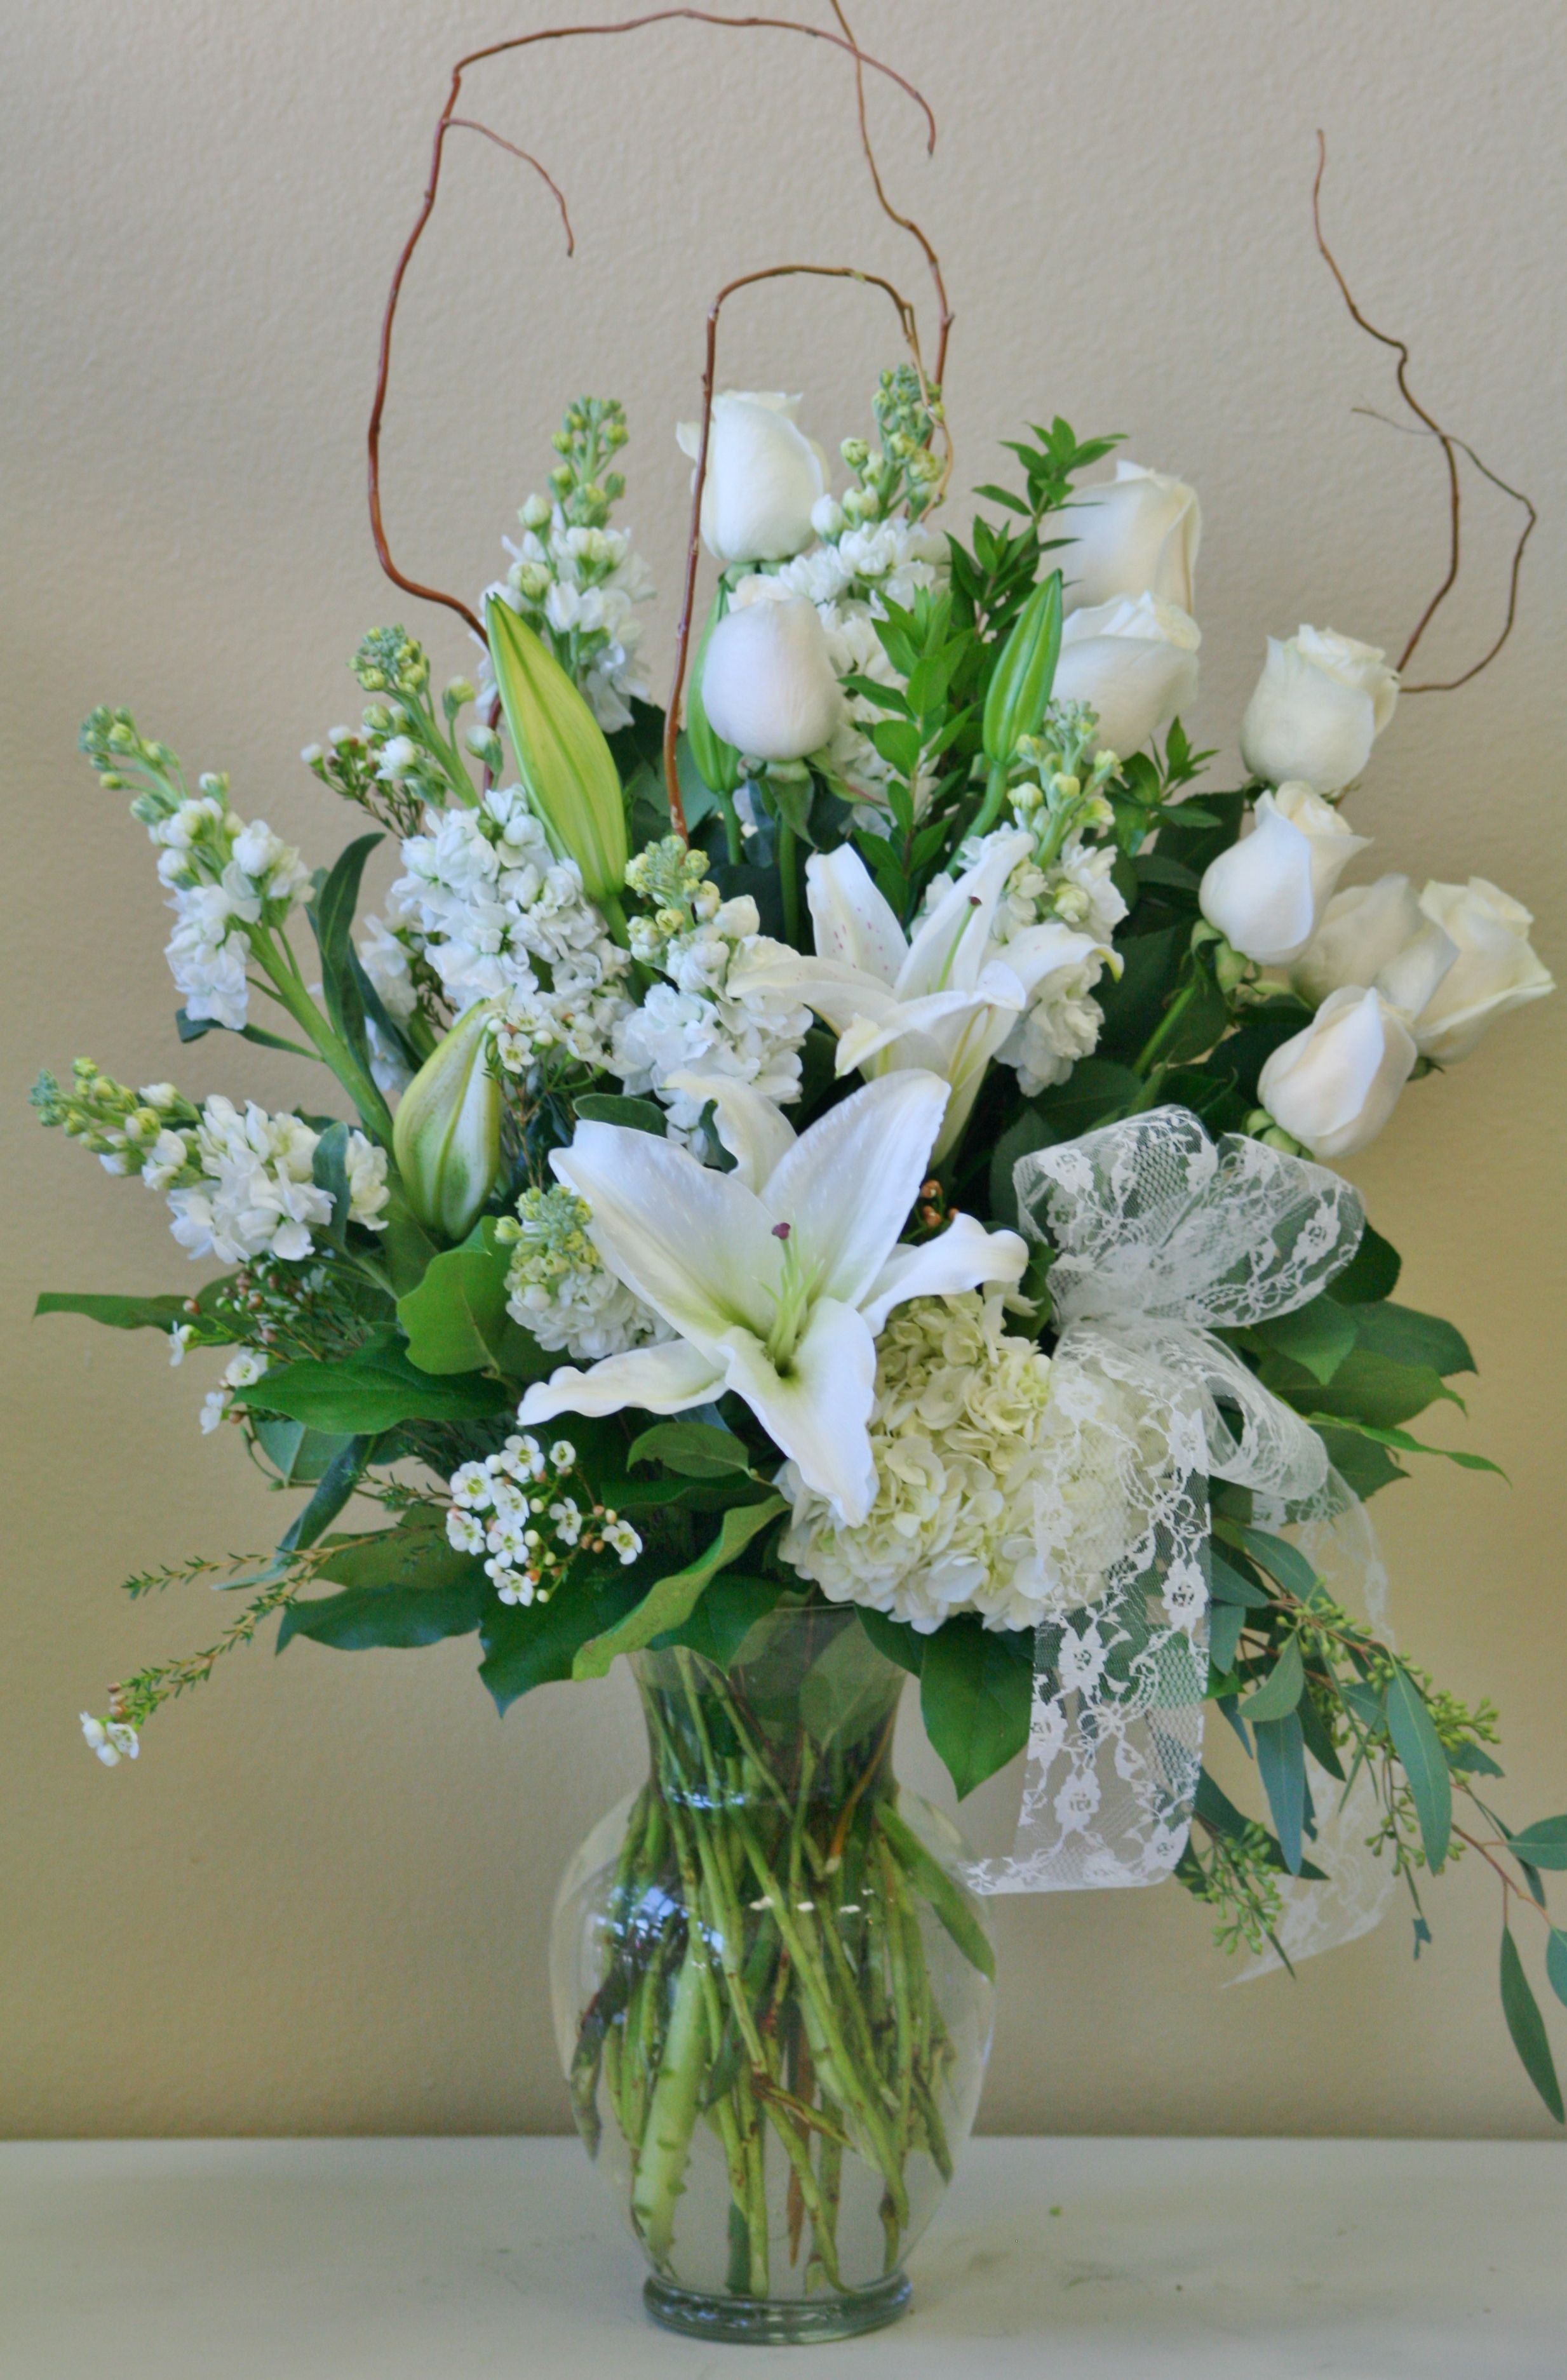 This Is An Arrangement Of All White Flowers Including White